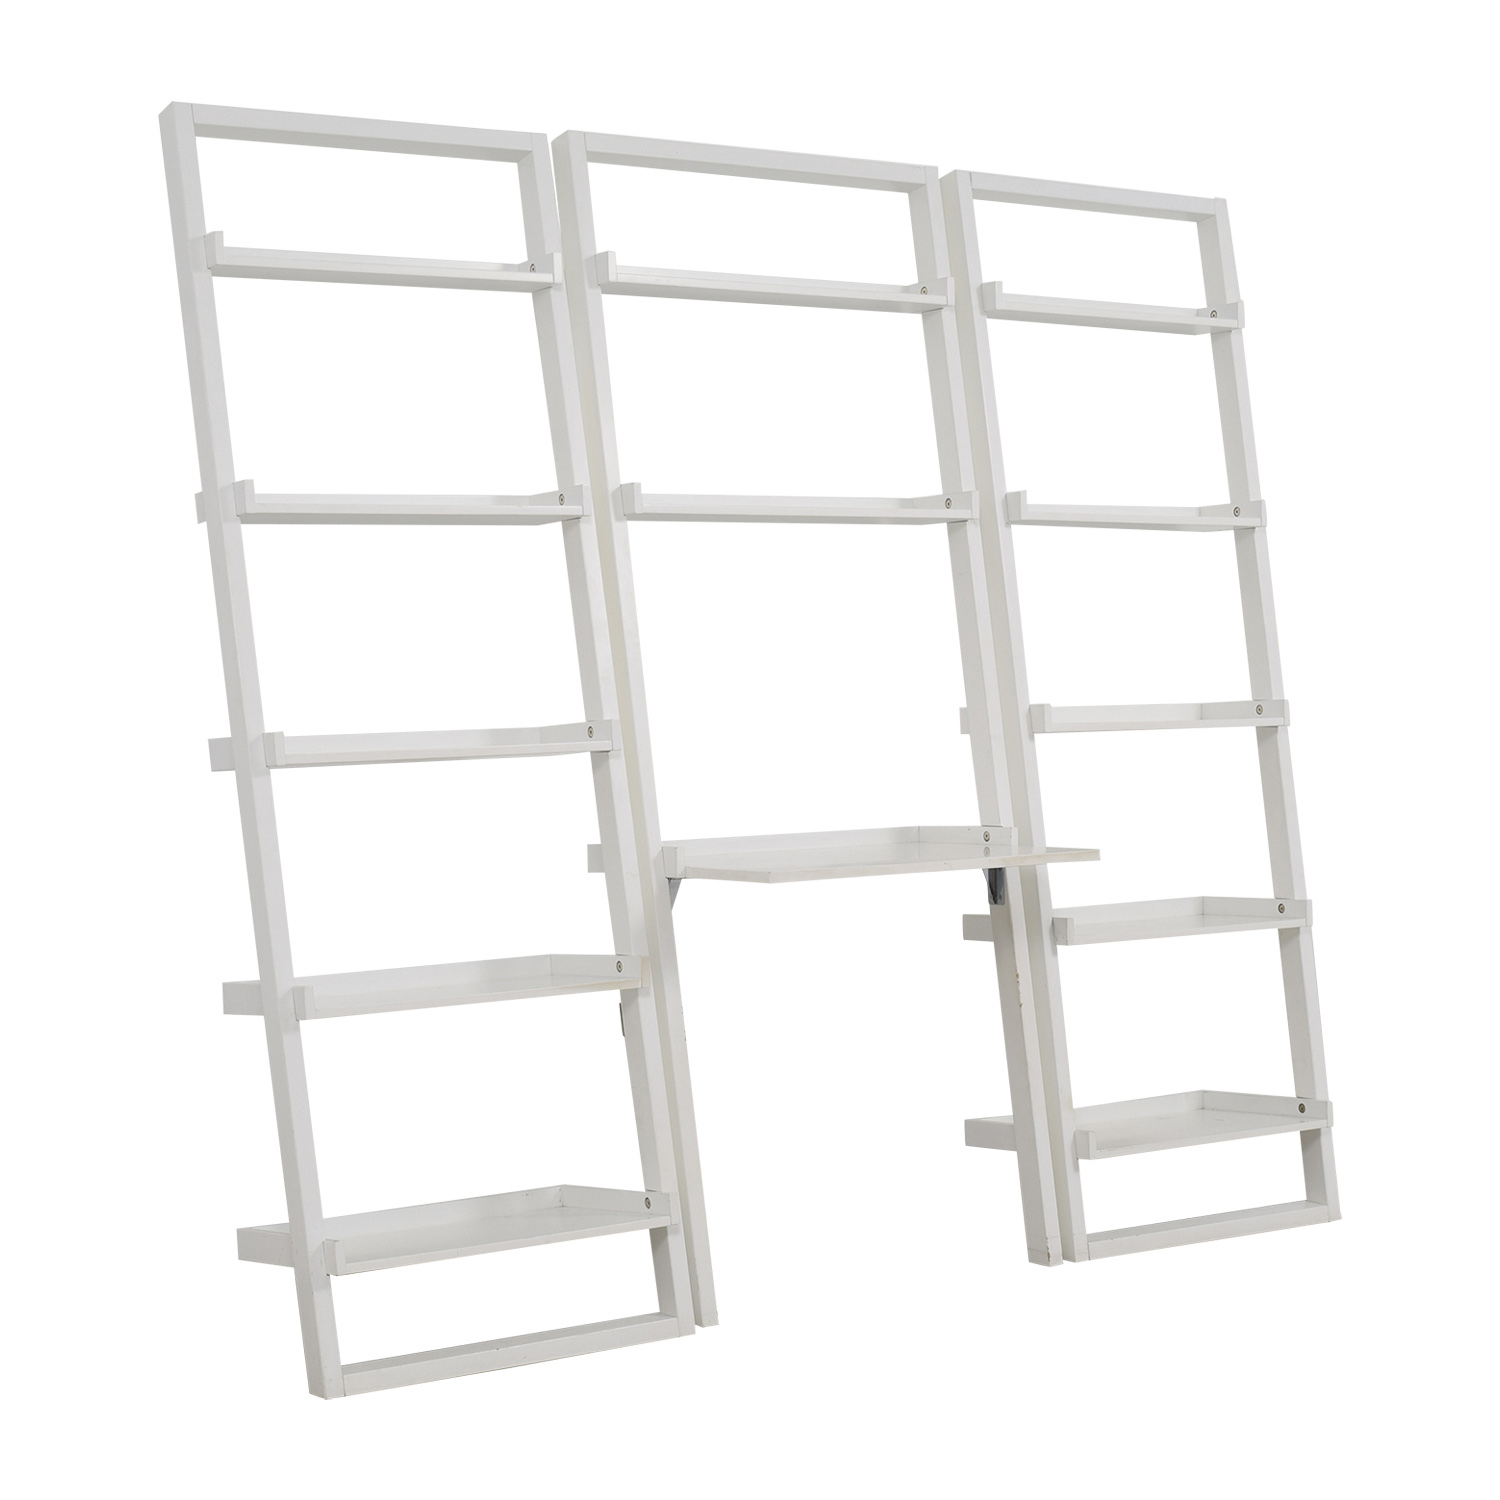 Crate & Barrel Crate & Barrel Leaning White Bookshelf discount